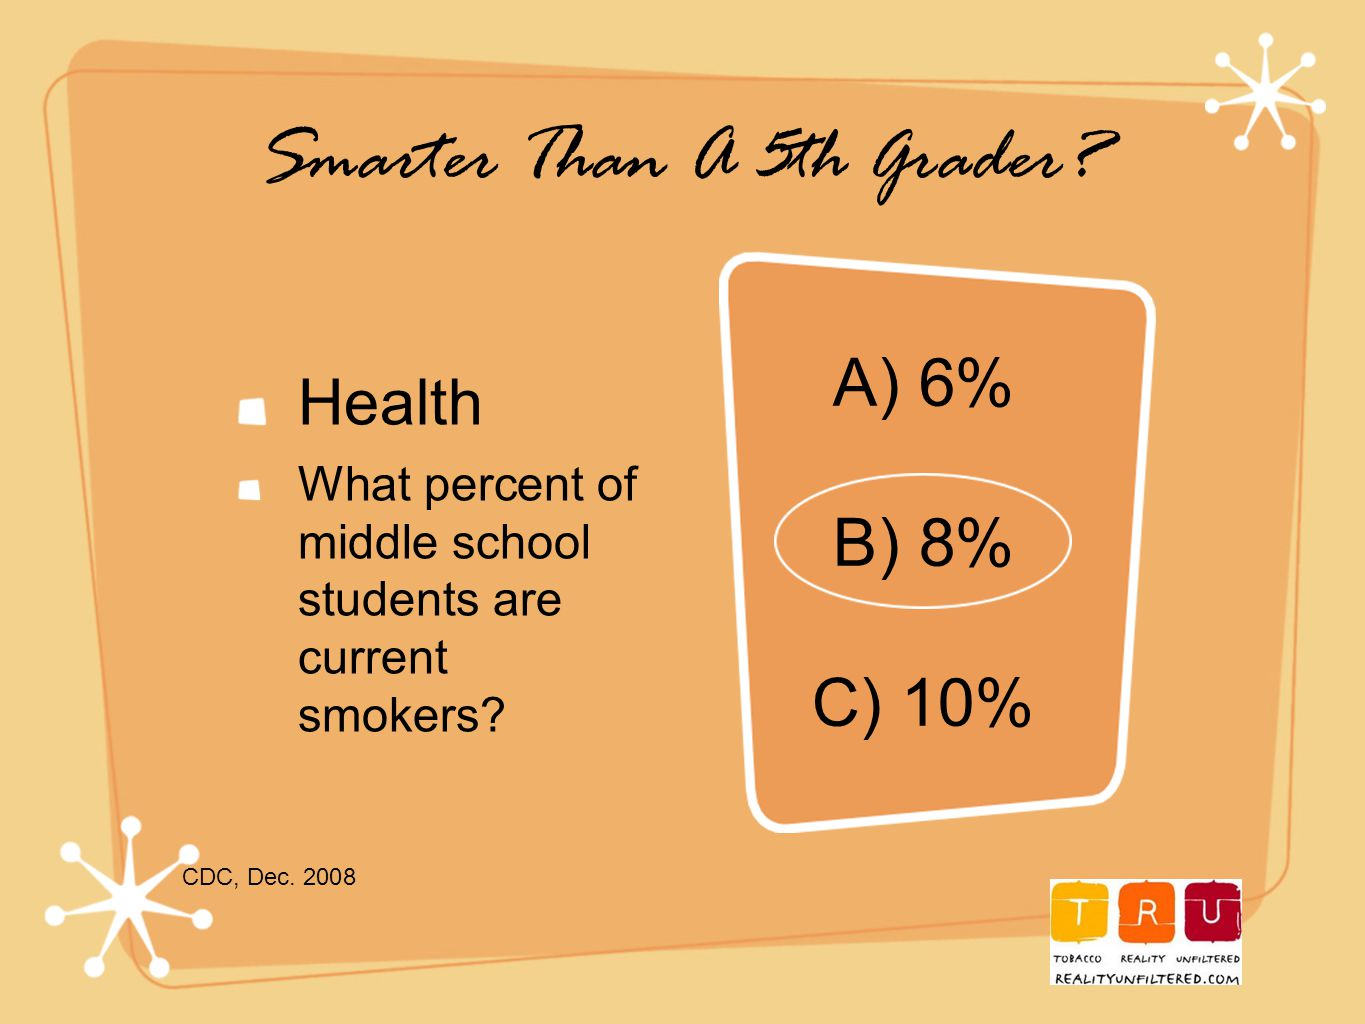 Smarter Than A 5th Grader. Health What percent of middle school students are current smokers.